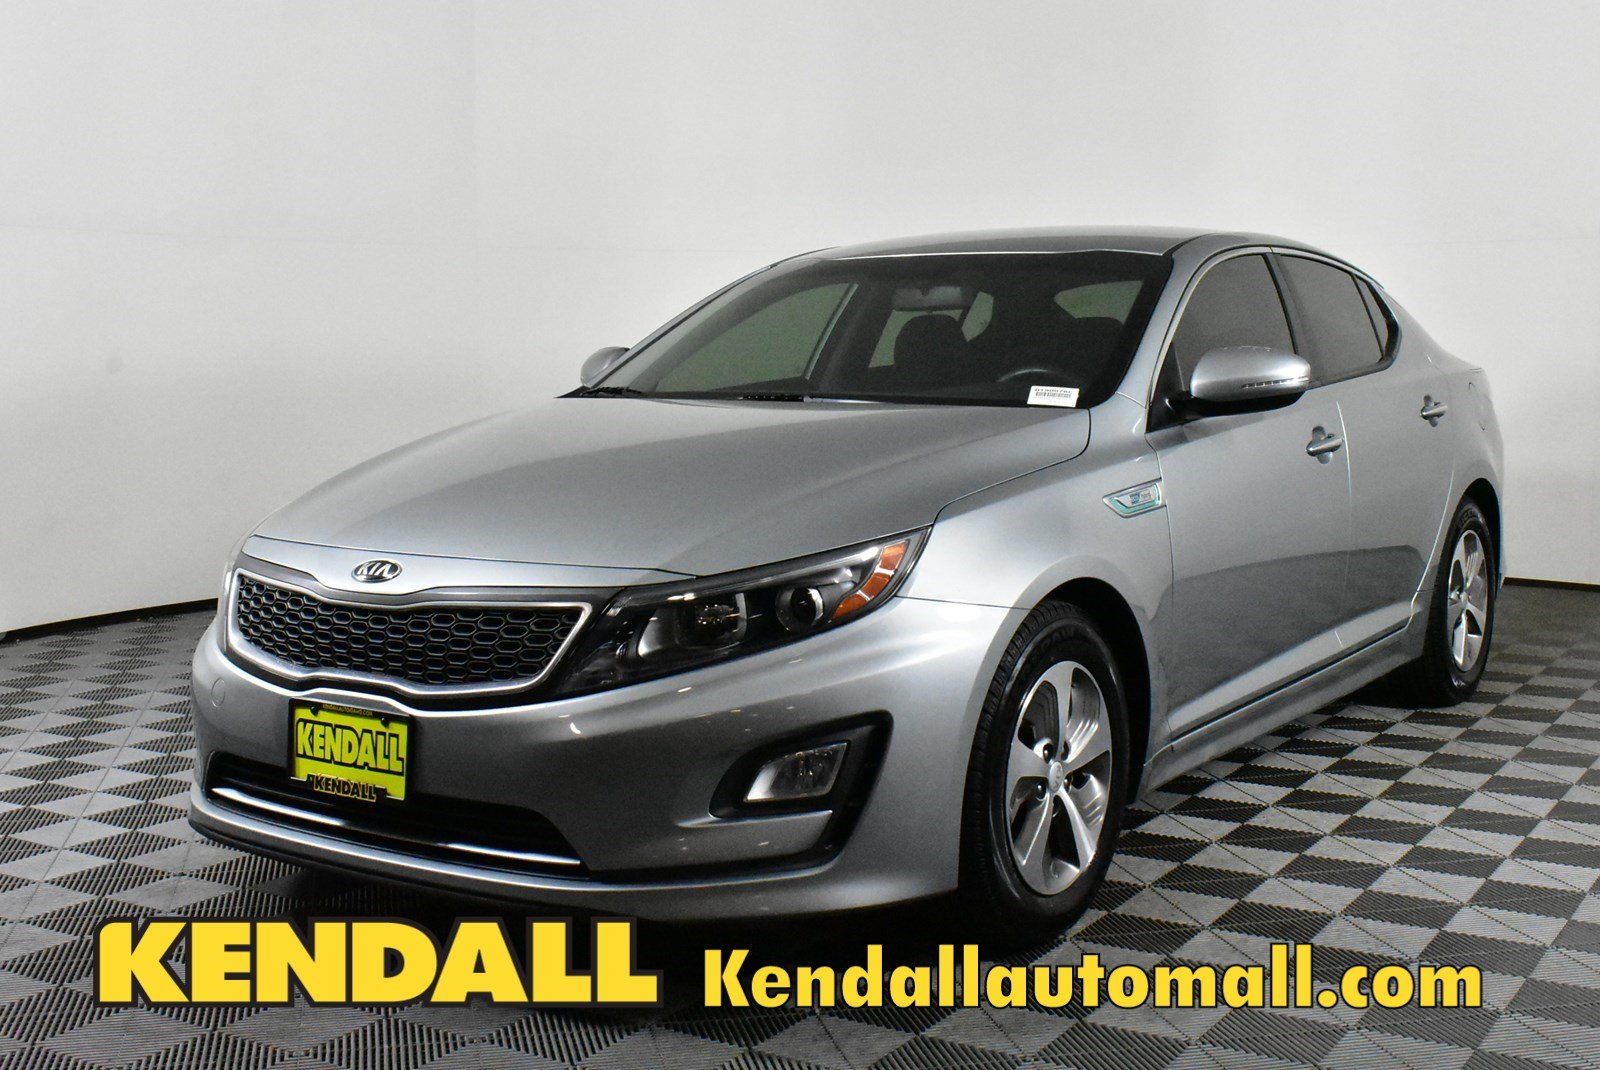 Pre-Owned 2014 Kia Optima Hybrid LX